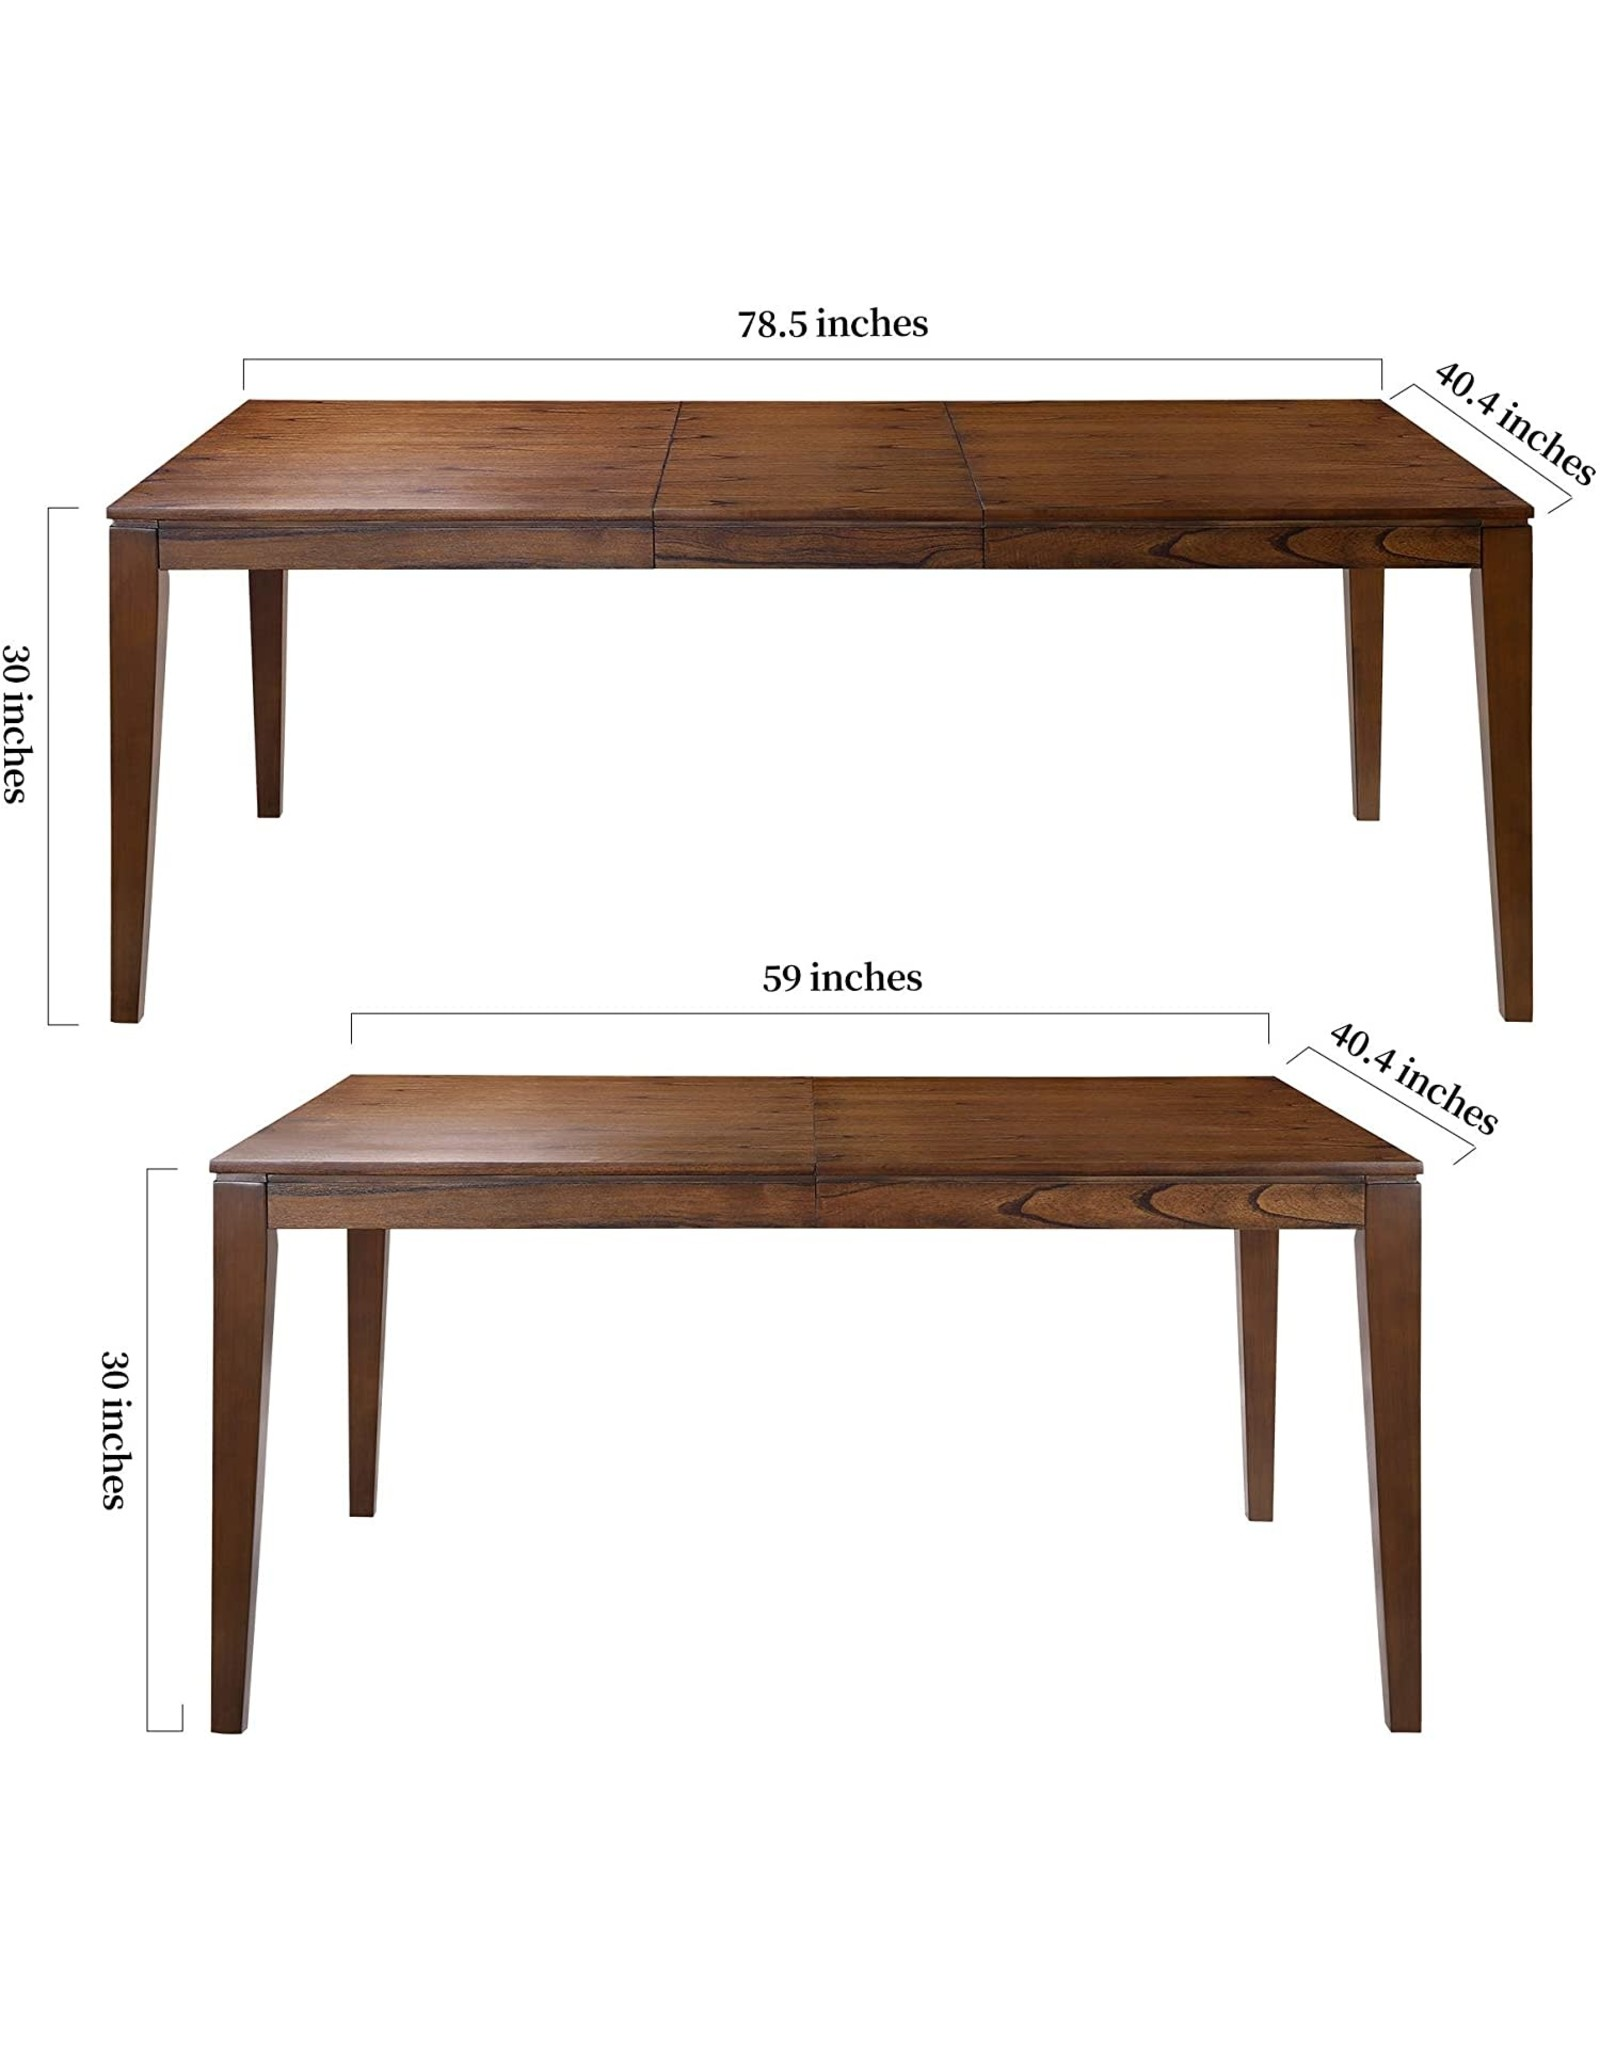 LALUZ LALUZ Modern Kitchen Table for 8 People, Extendable Rectangular Heavy Duty Solid Wood Furniture for Dining Room, Brown